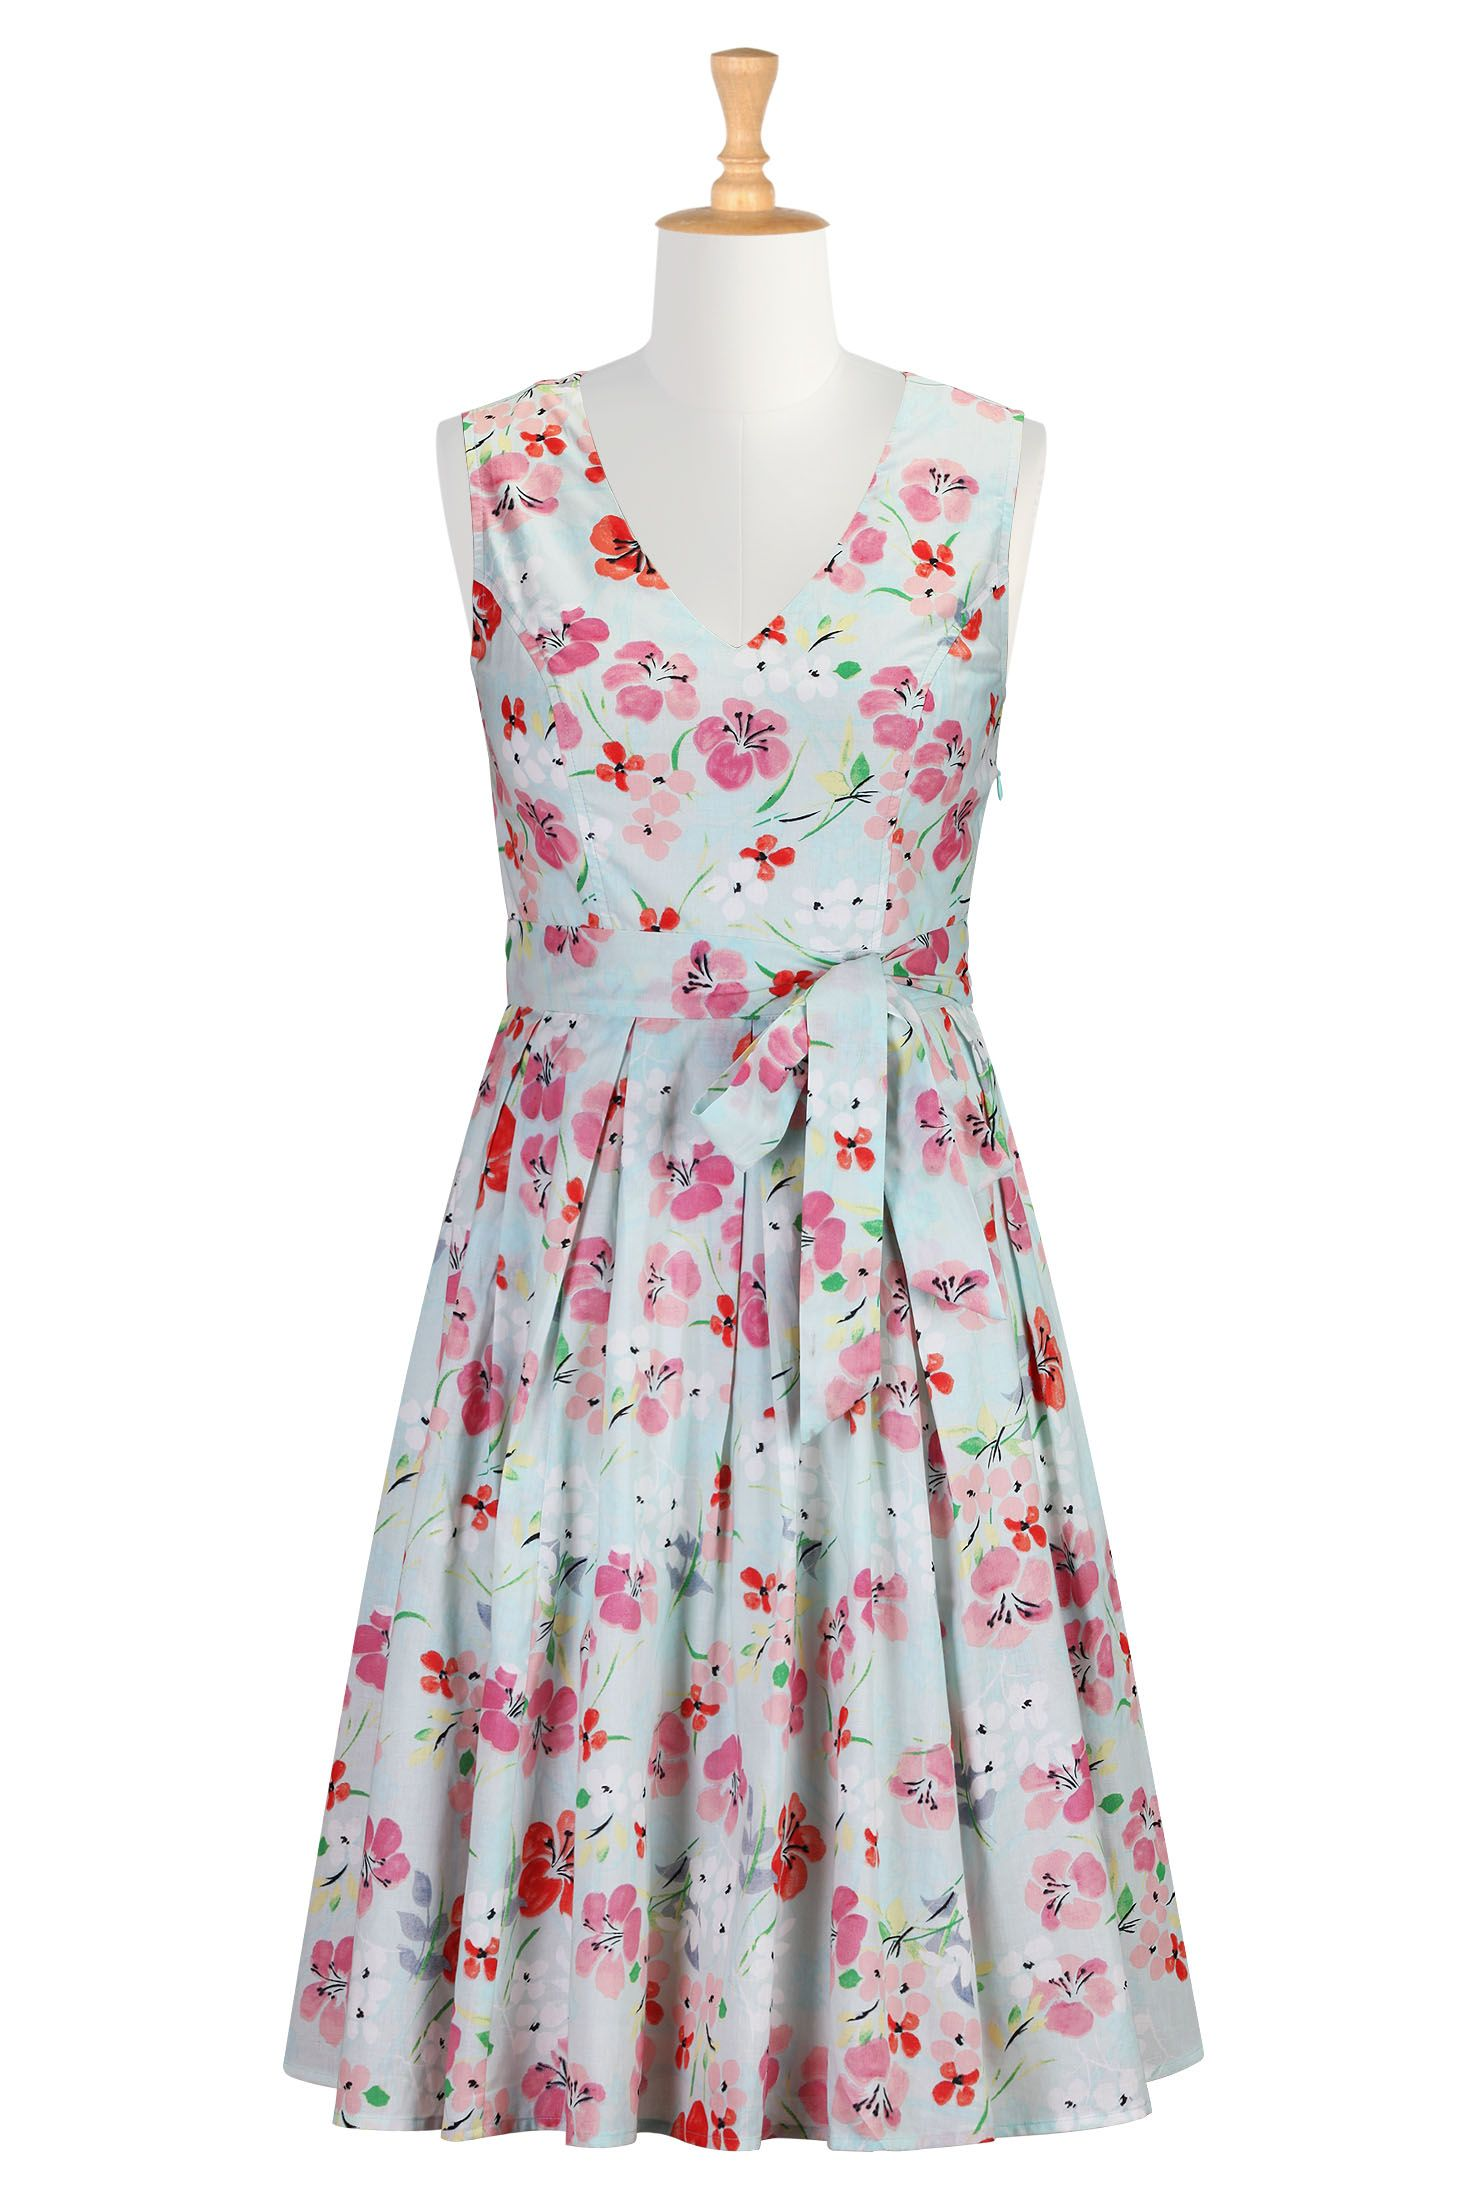 Floral wash print sash tied dress | Print..., Short dresses and Shops